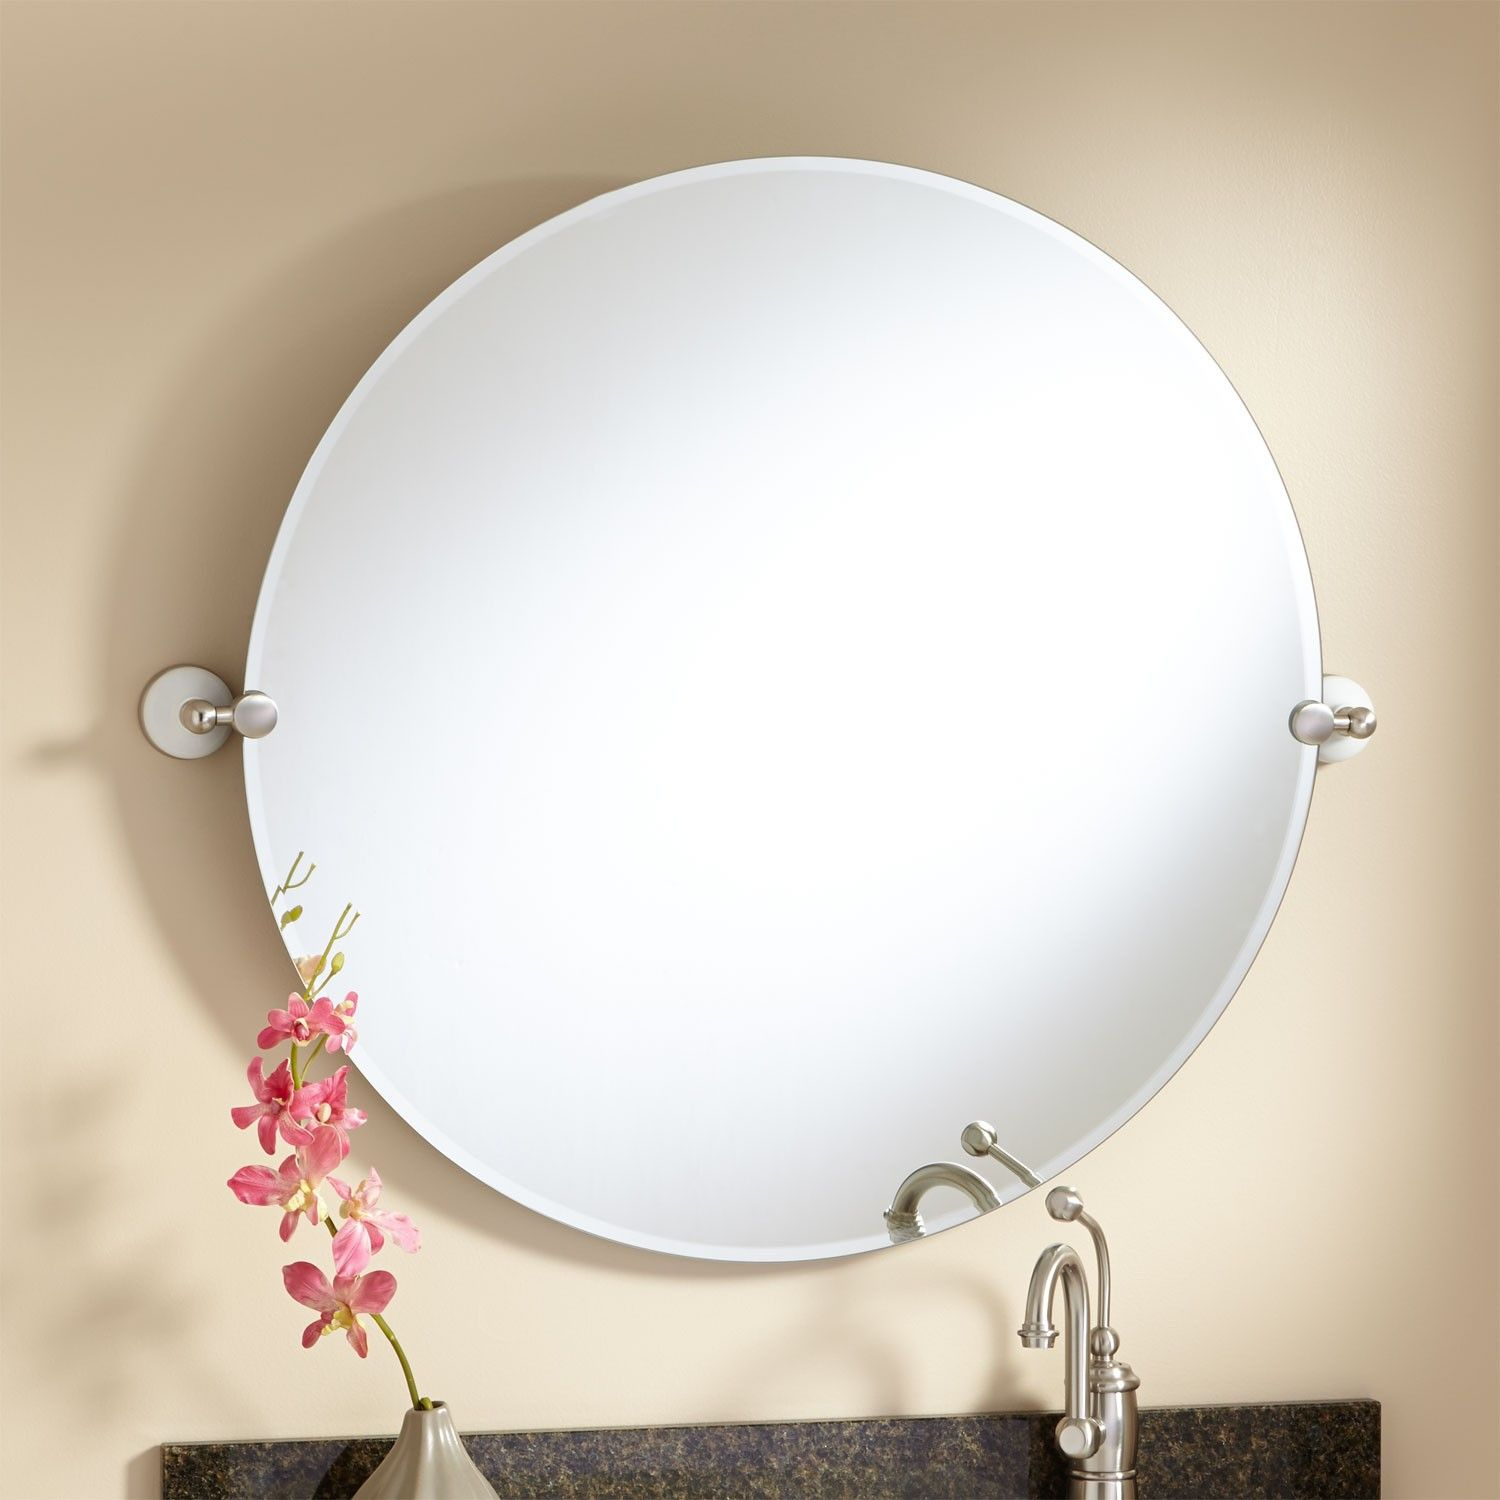 Round Tilting Bathroom Mirror Mirror Ideas Trim Around Tilting. 37 ...